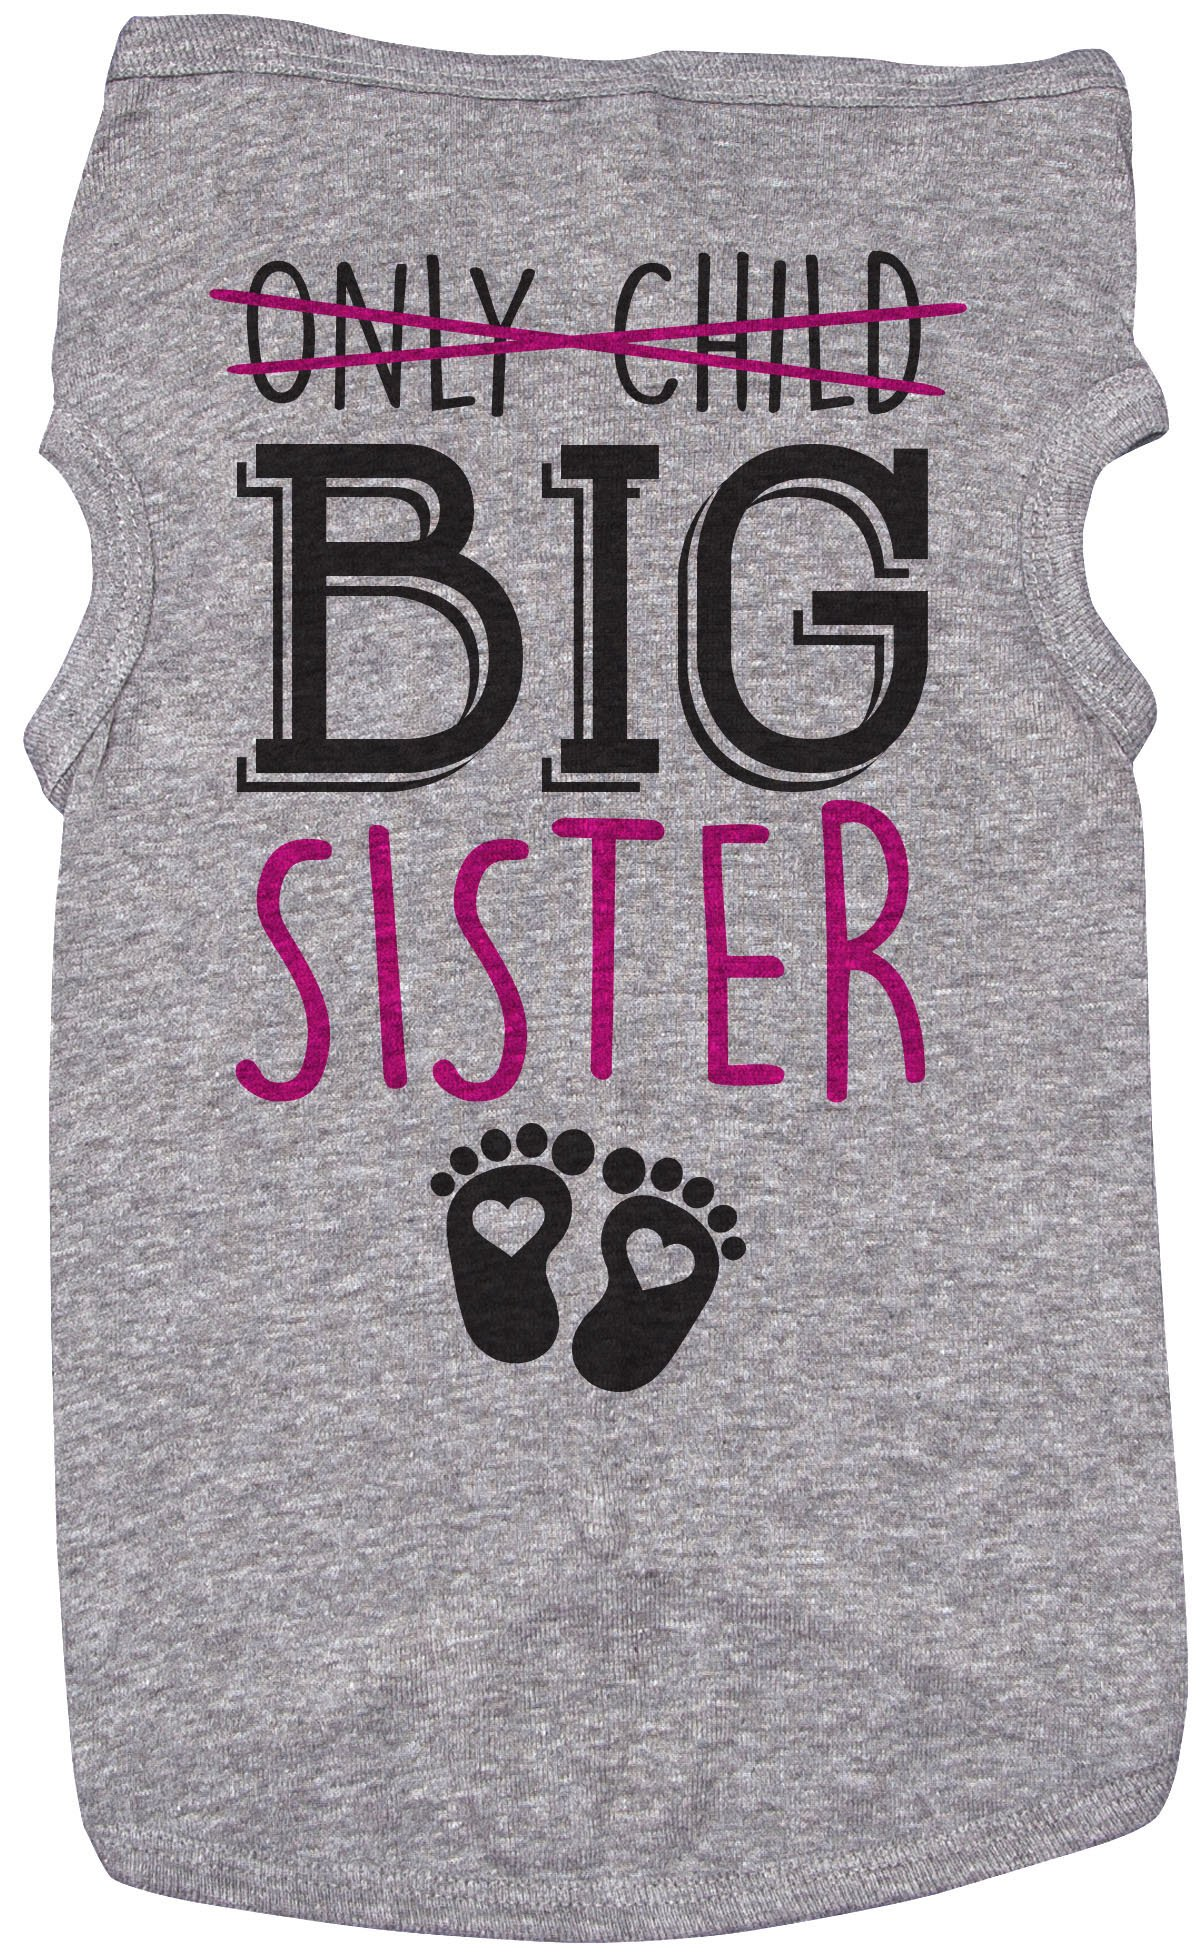 Big Sis Shirt for Dogs/ONLY Child, Big Sister/Grey Puppy Tee (Medium)